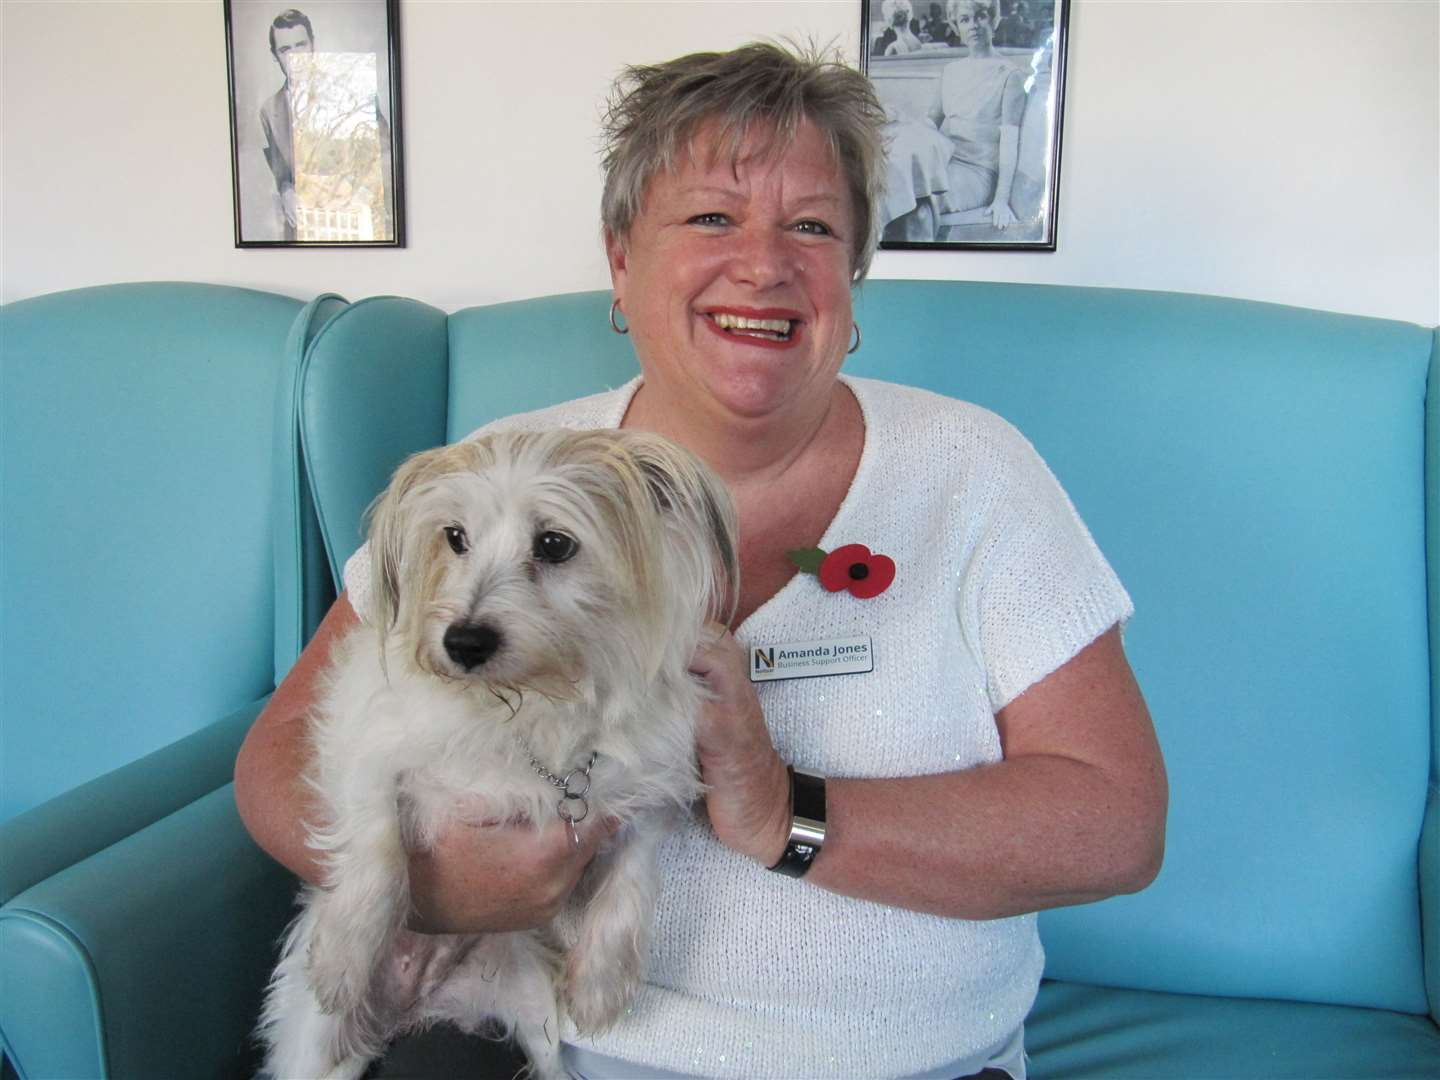 Business support officer, Amanda Jones, and her loyal companion Roxi. Picture: Nellsar